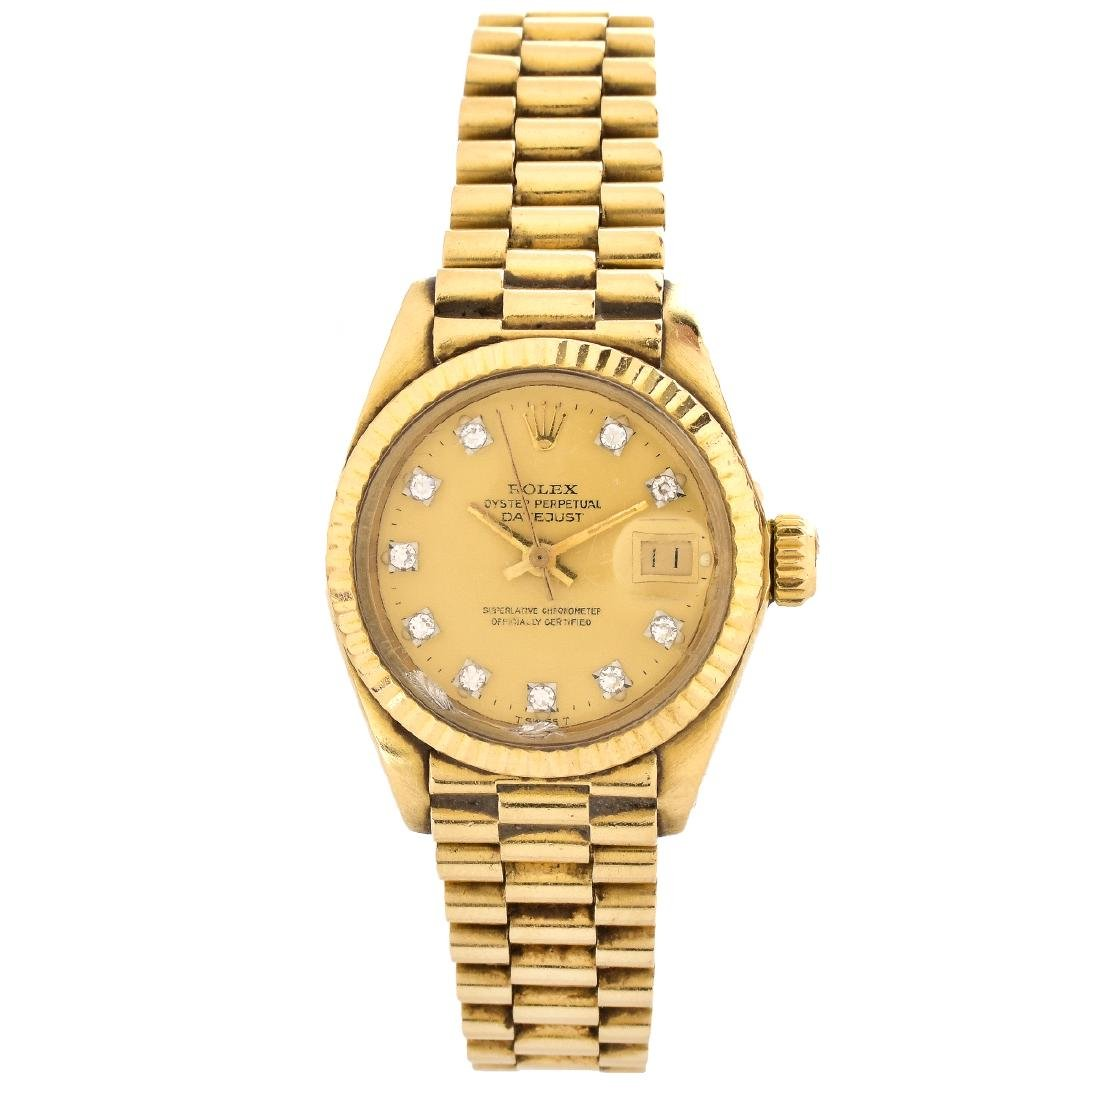 Lady's Rolex 18K Gold Date Just Watch